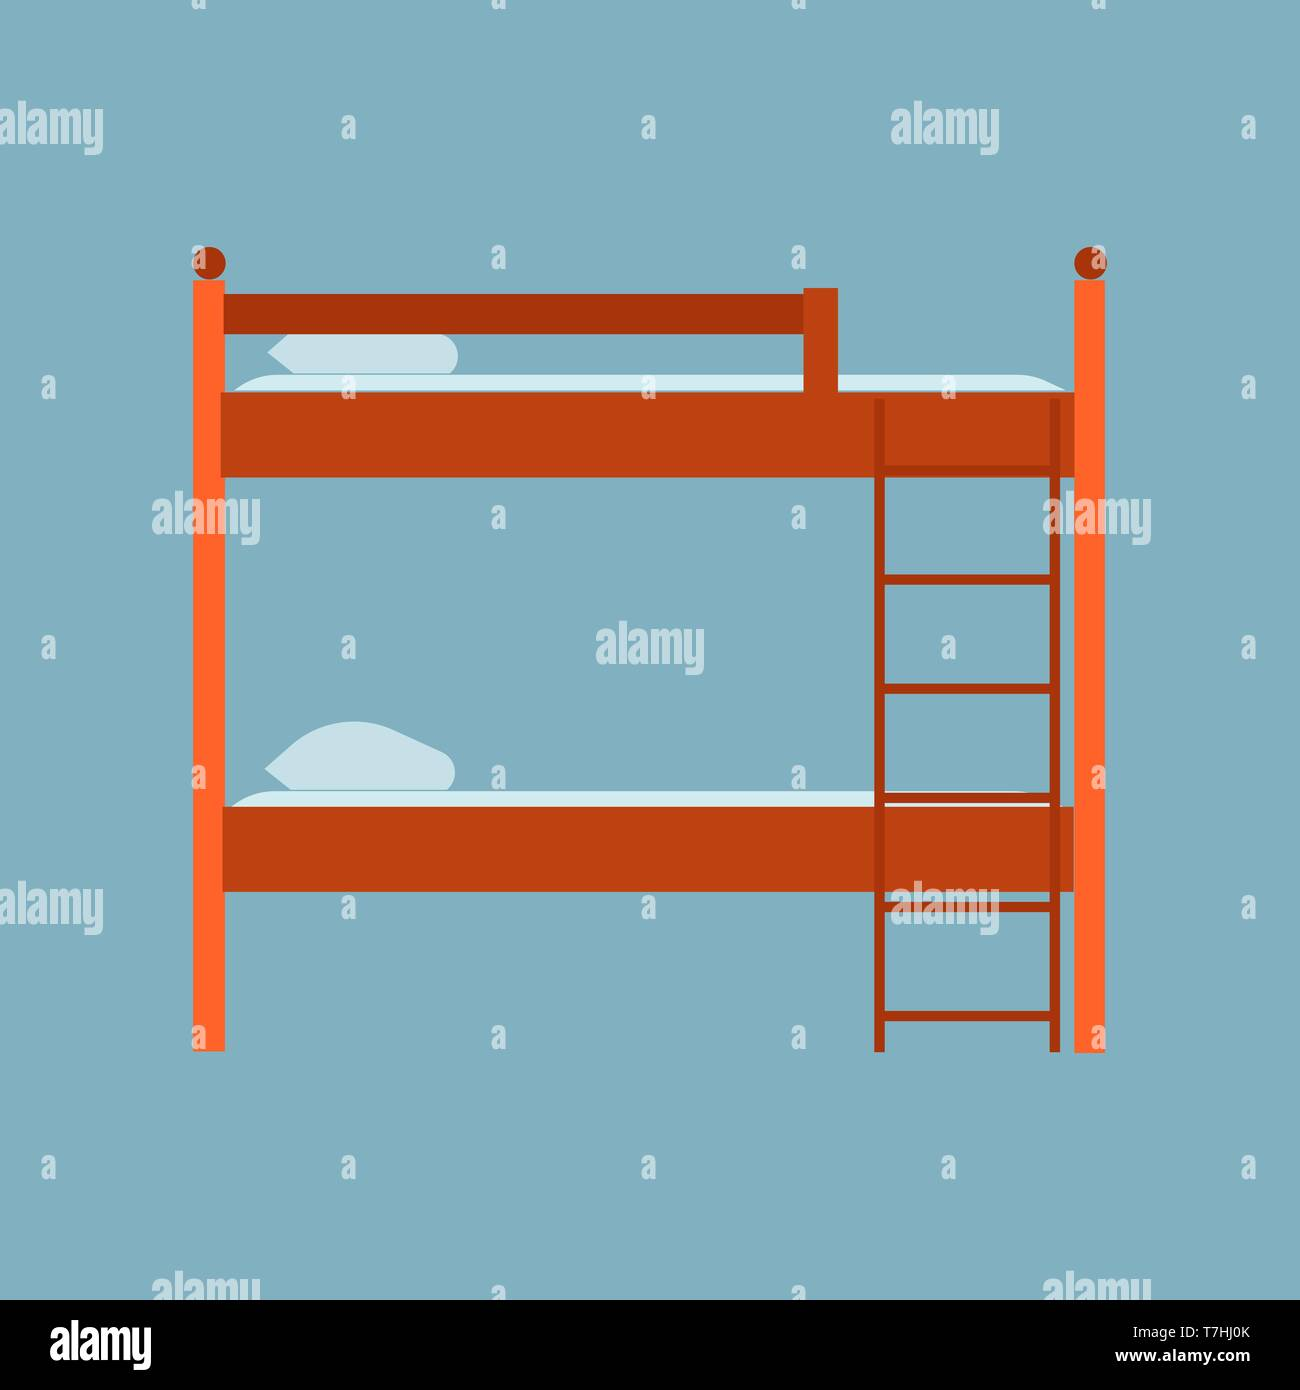 Bed side view vector icon comfortable apartment. Bedding room luxury pictogram mattress interior. Flat wooden furniture - Stock Vector